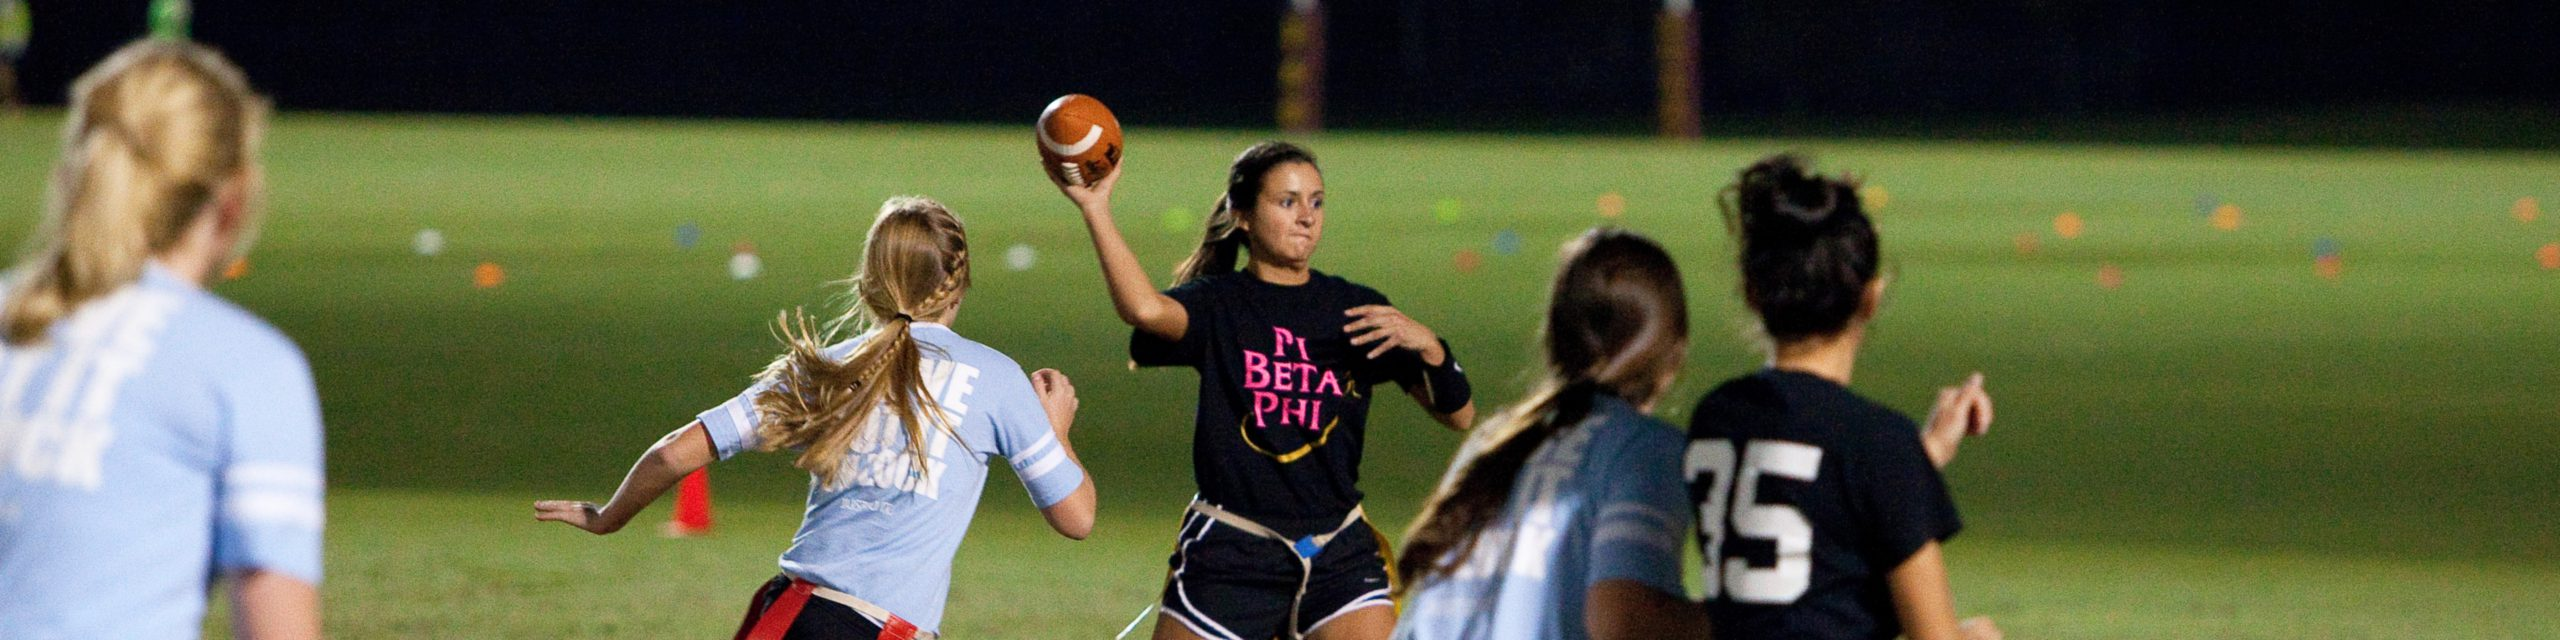 Girl playing flag football